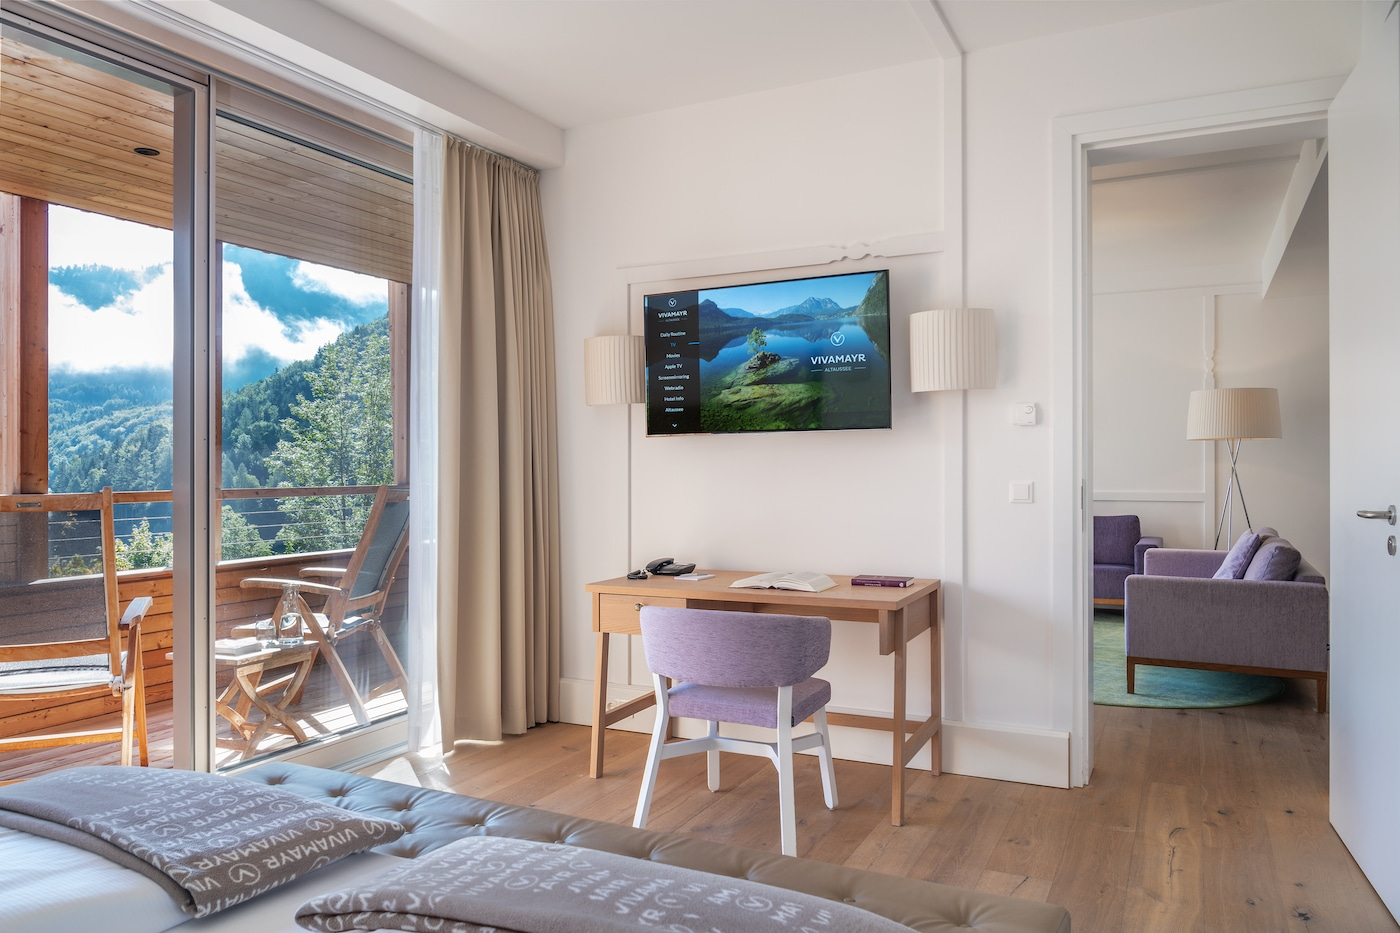 modern bedroom filled with light in Junior Suite with lake view VIVAMAYR Altausee